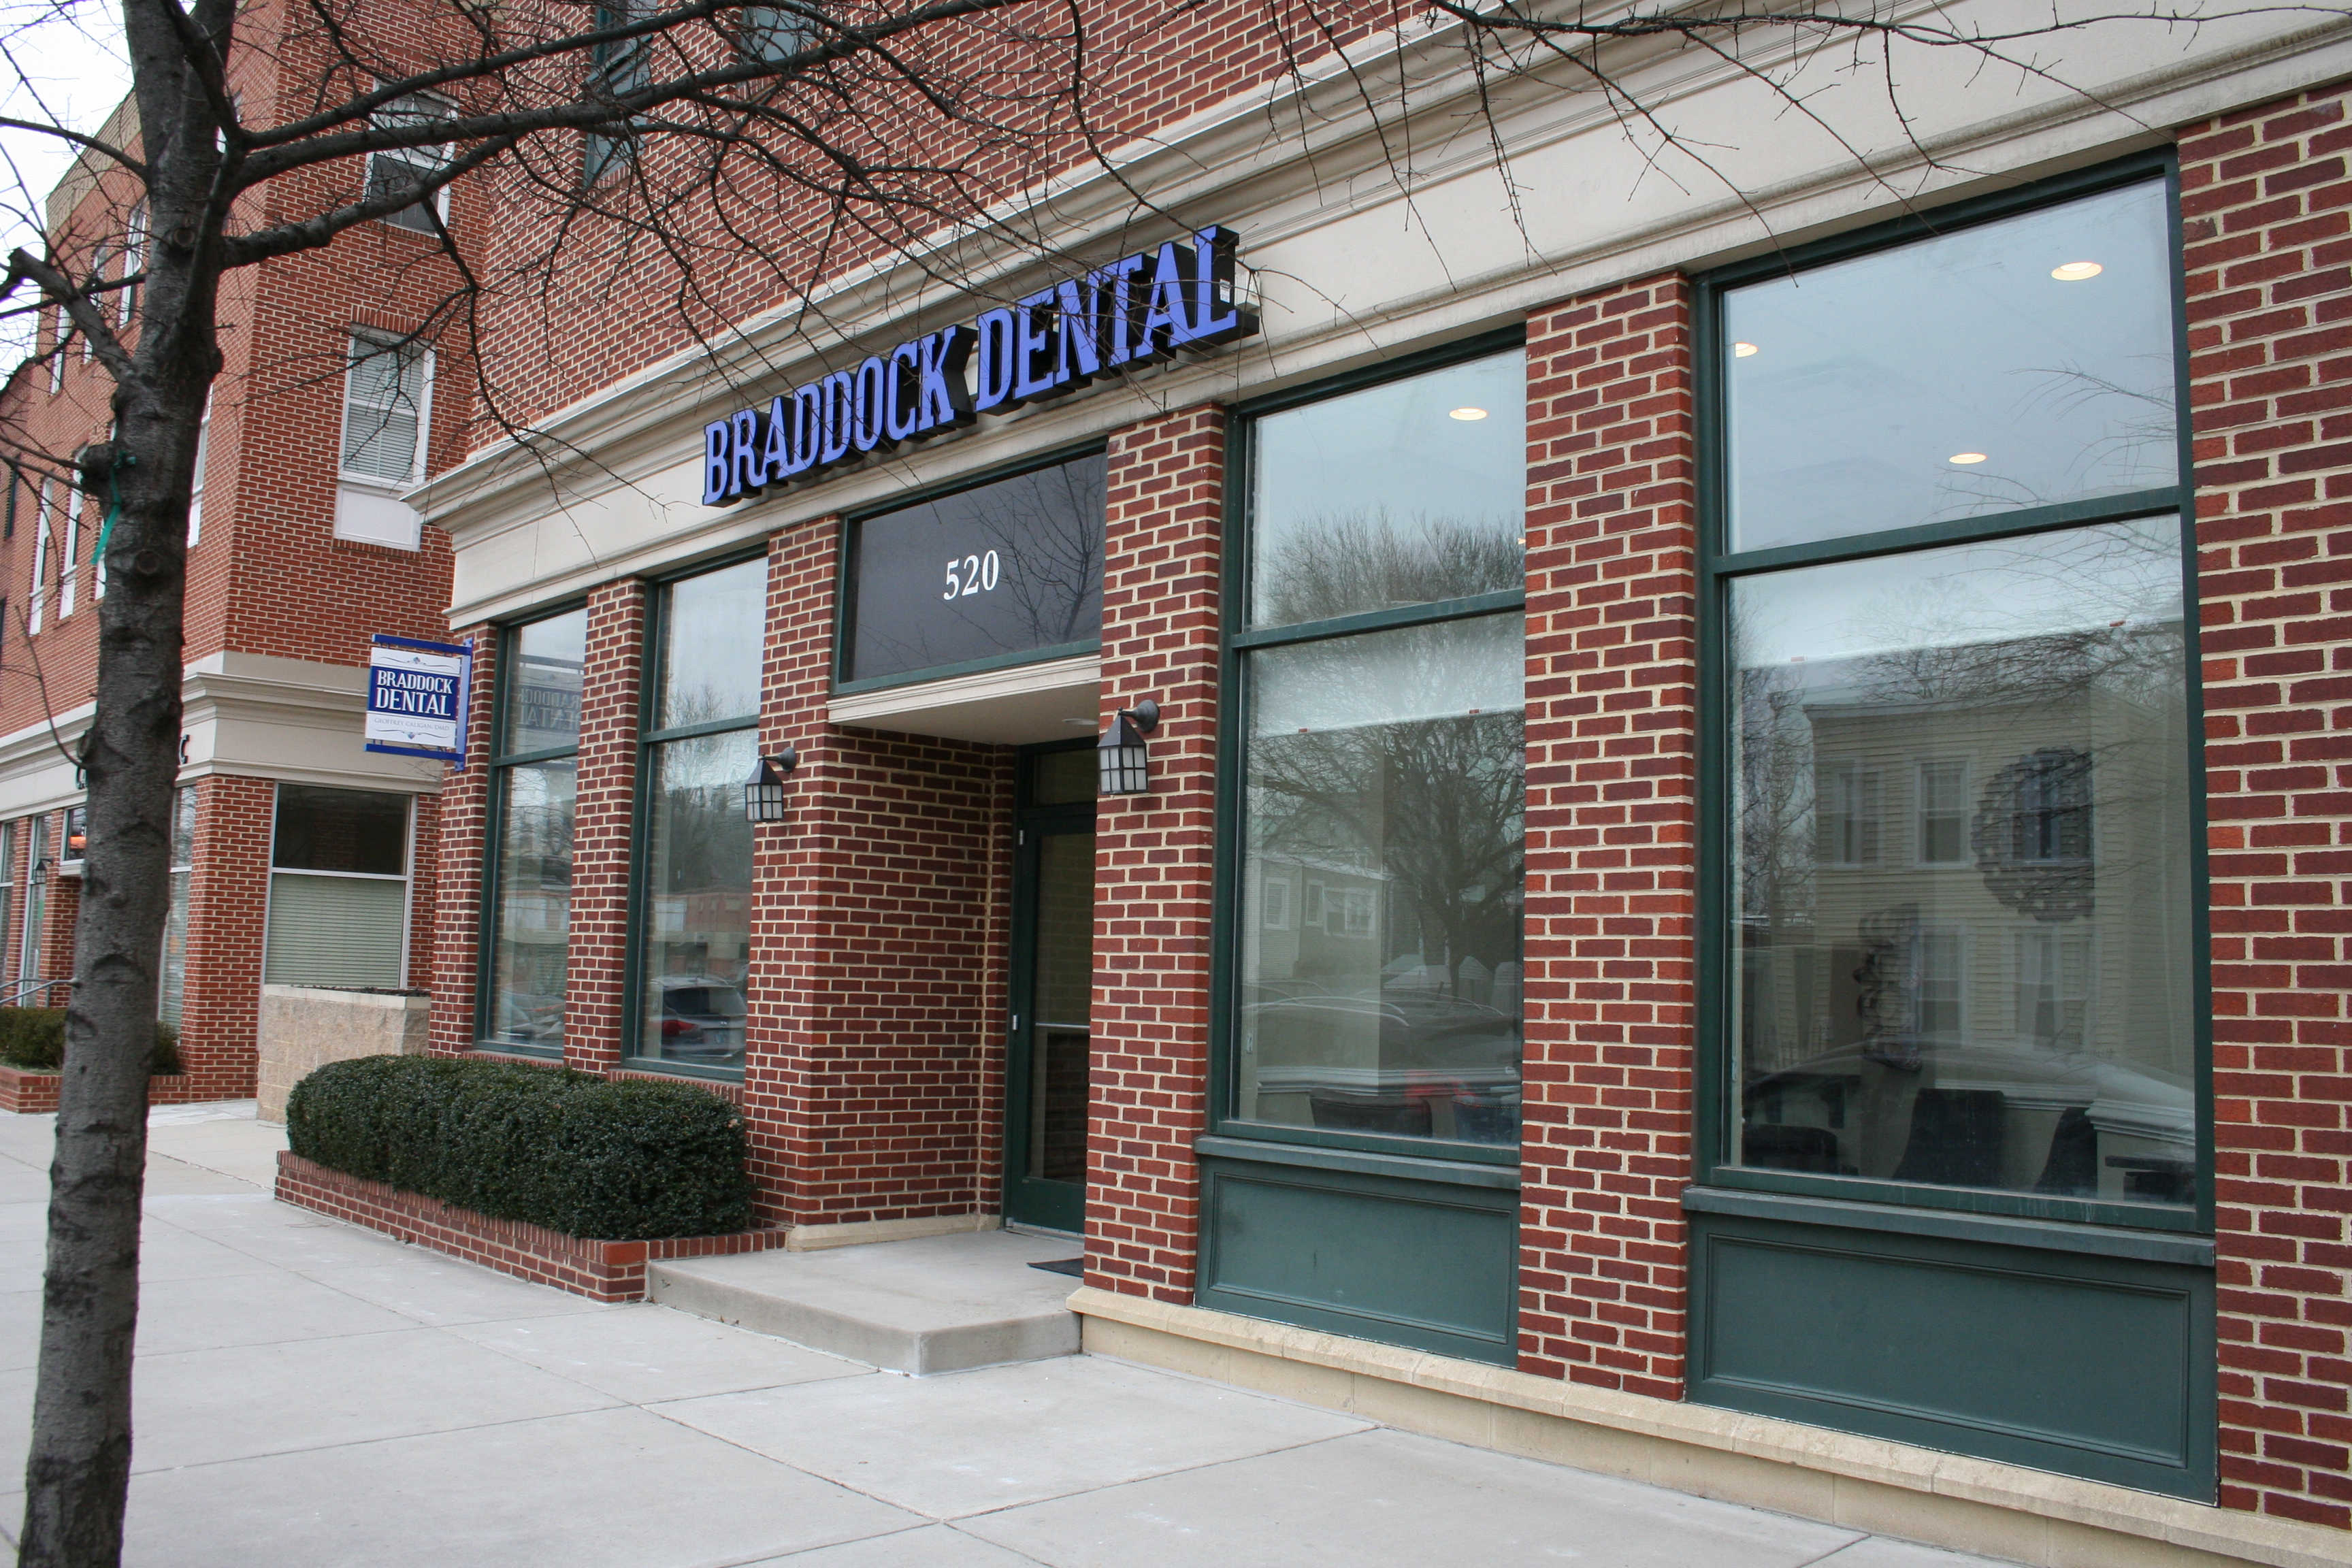 Braddock Dental - Office Building